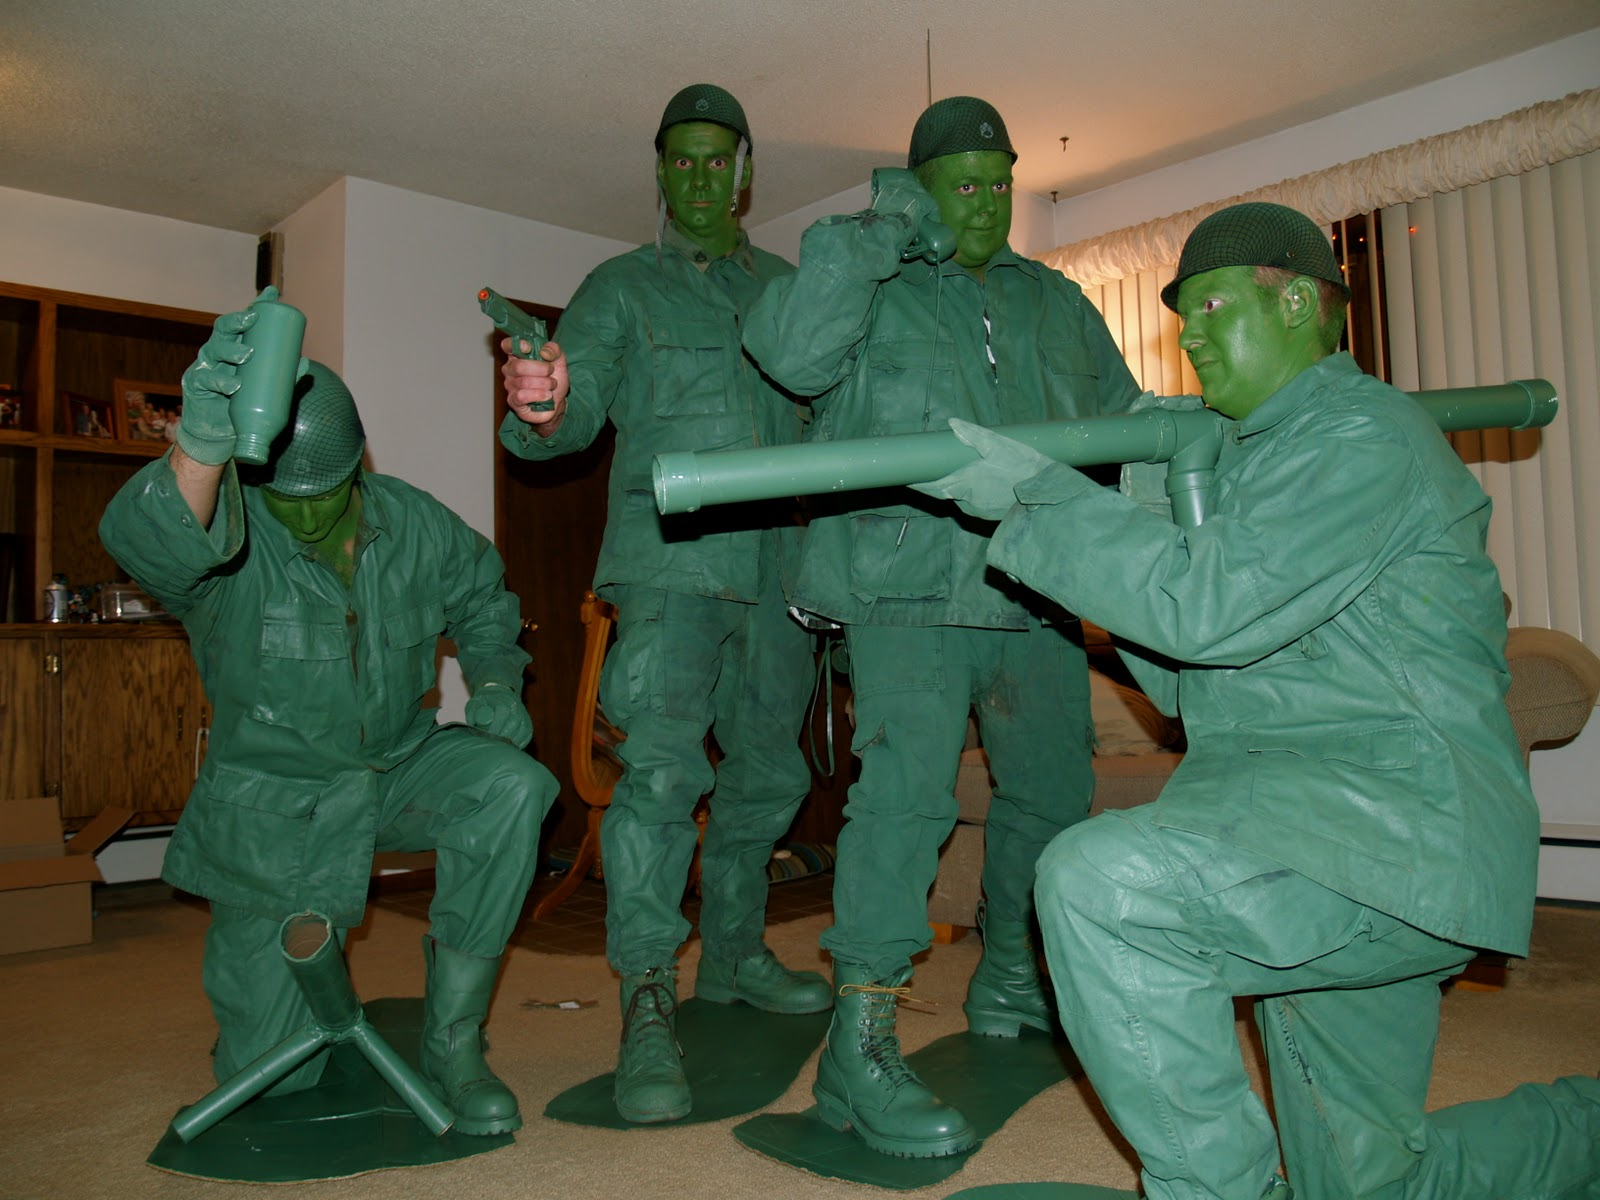 Best and Craziest Halloween Costumes of the Year